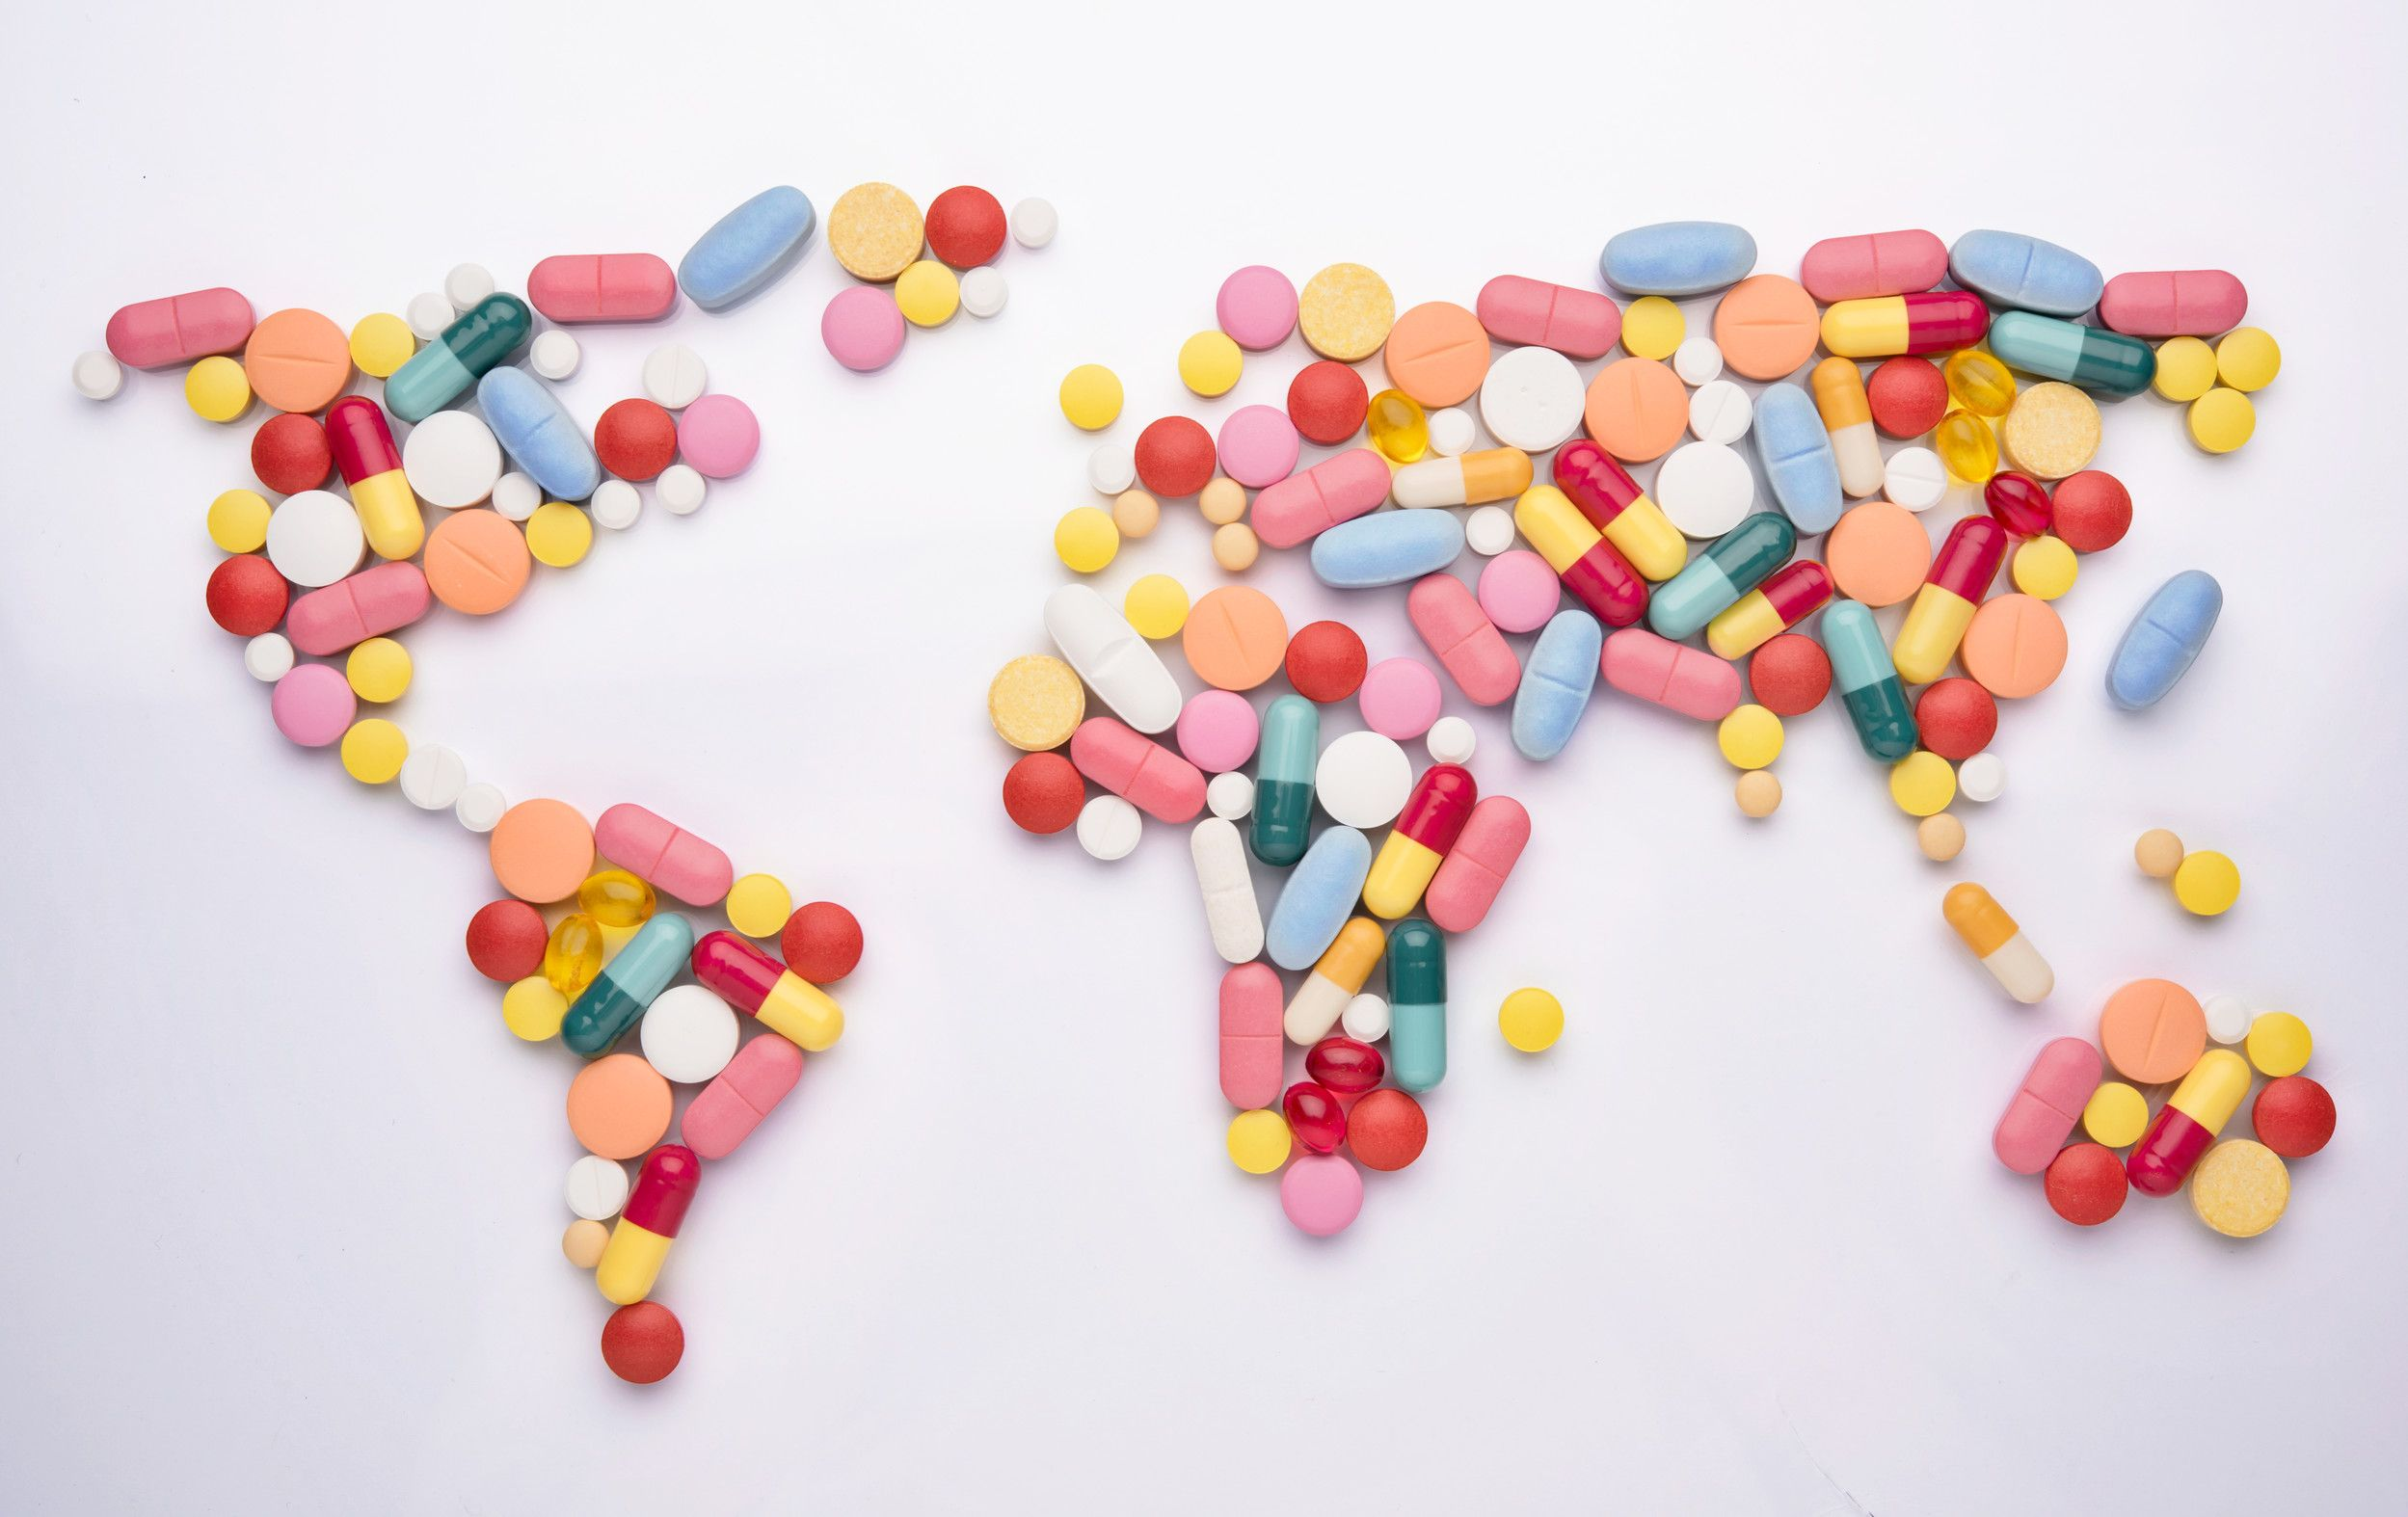 A map of the world made out of coloured pills